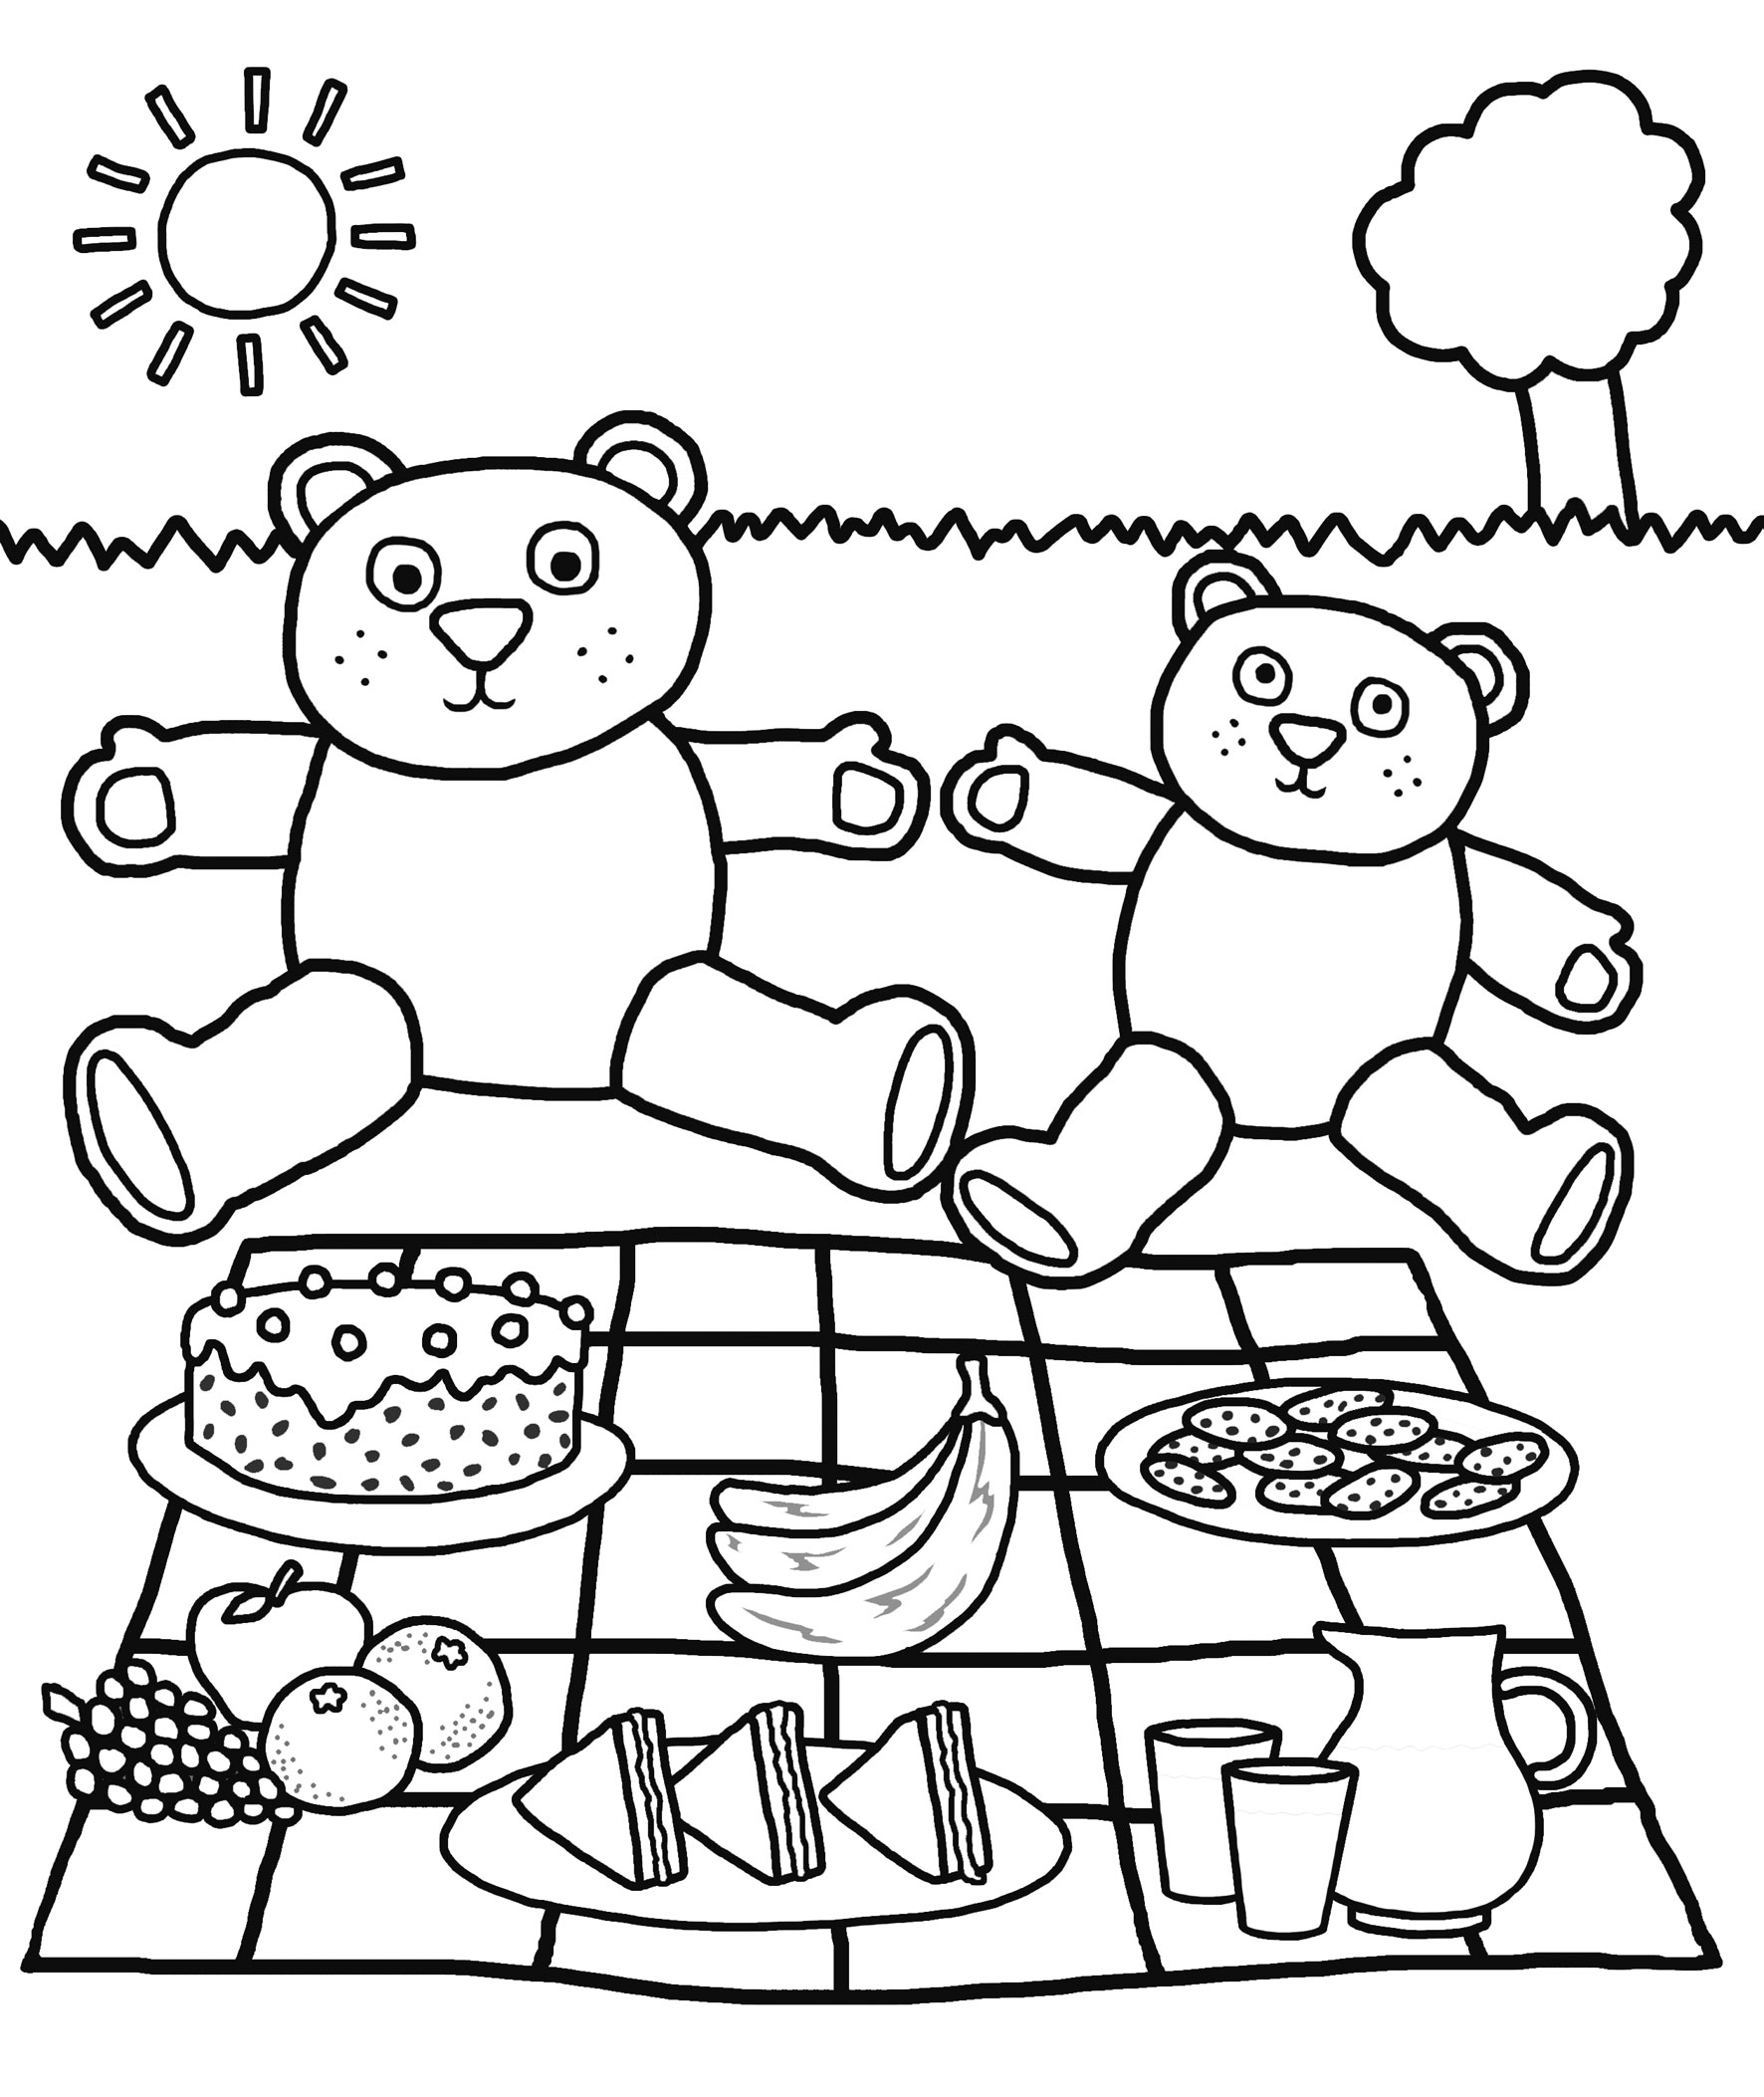 preschool free coloring pages - photo #38